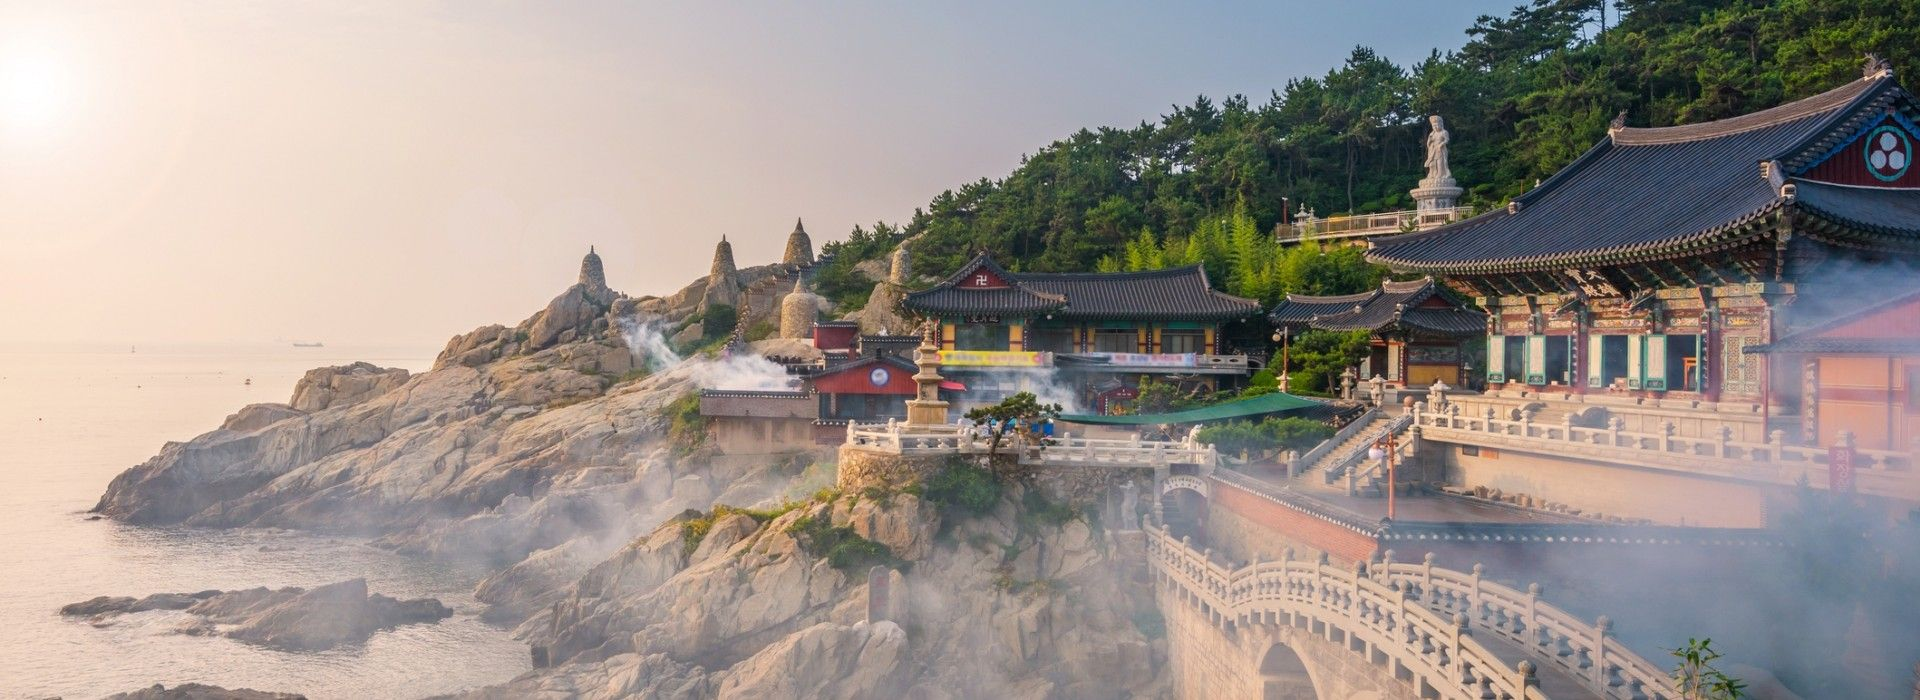 Sightseeing Tours in South Korea